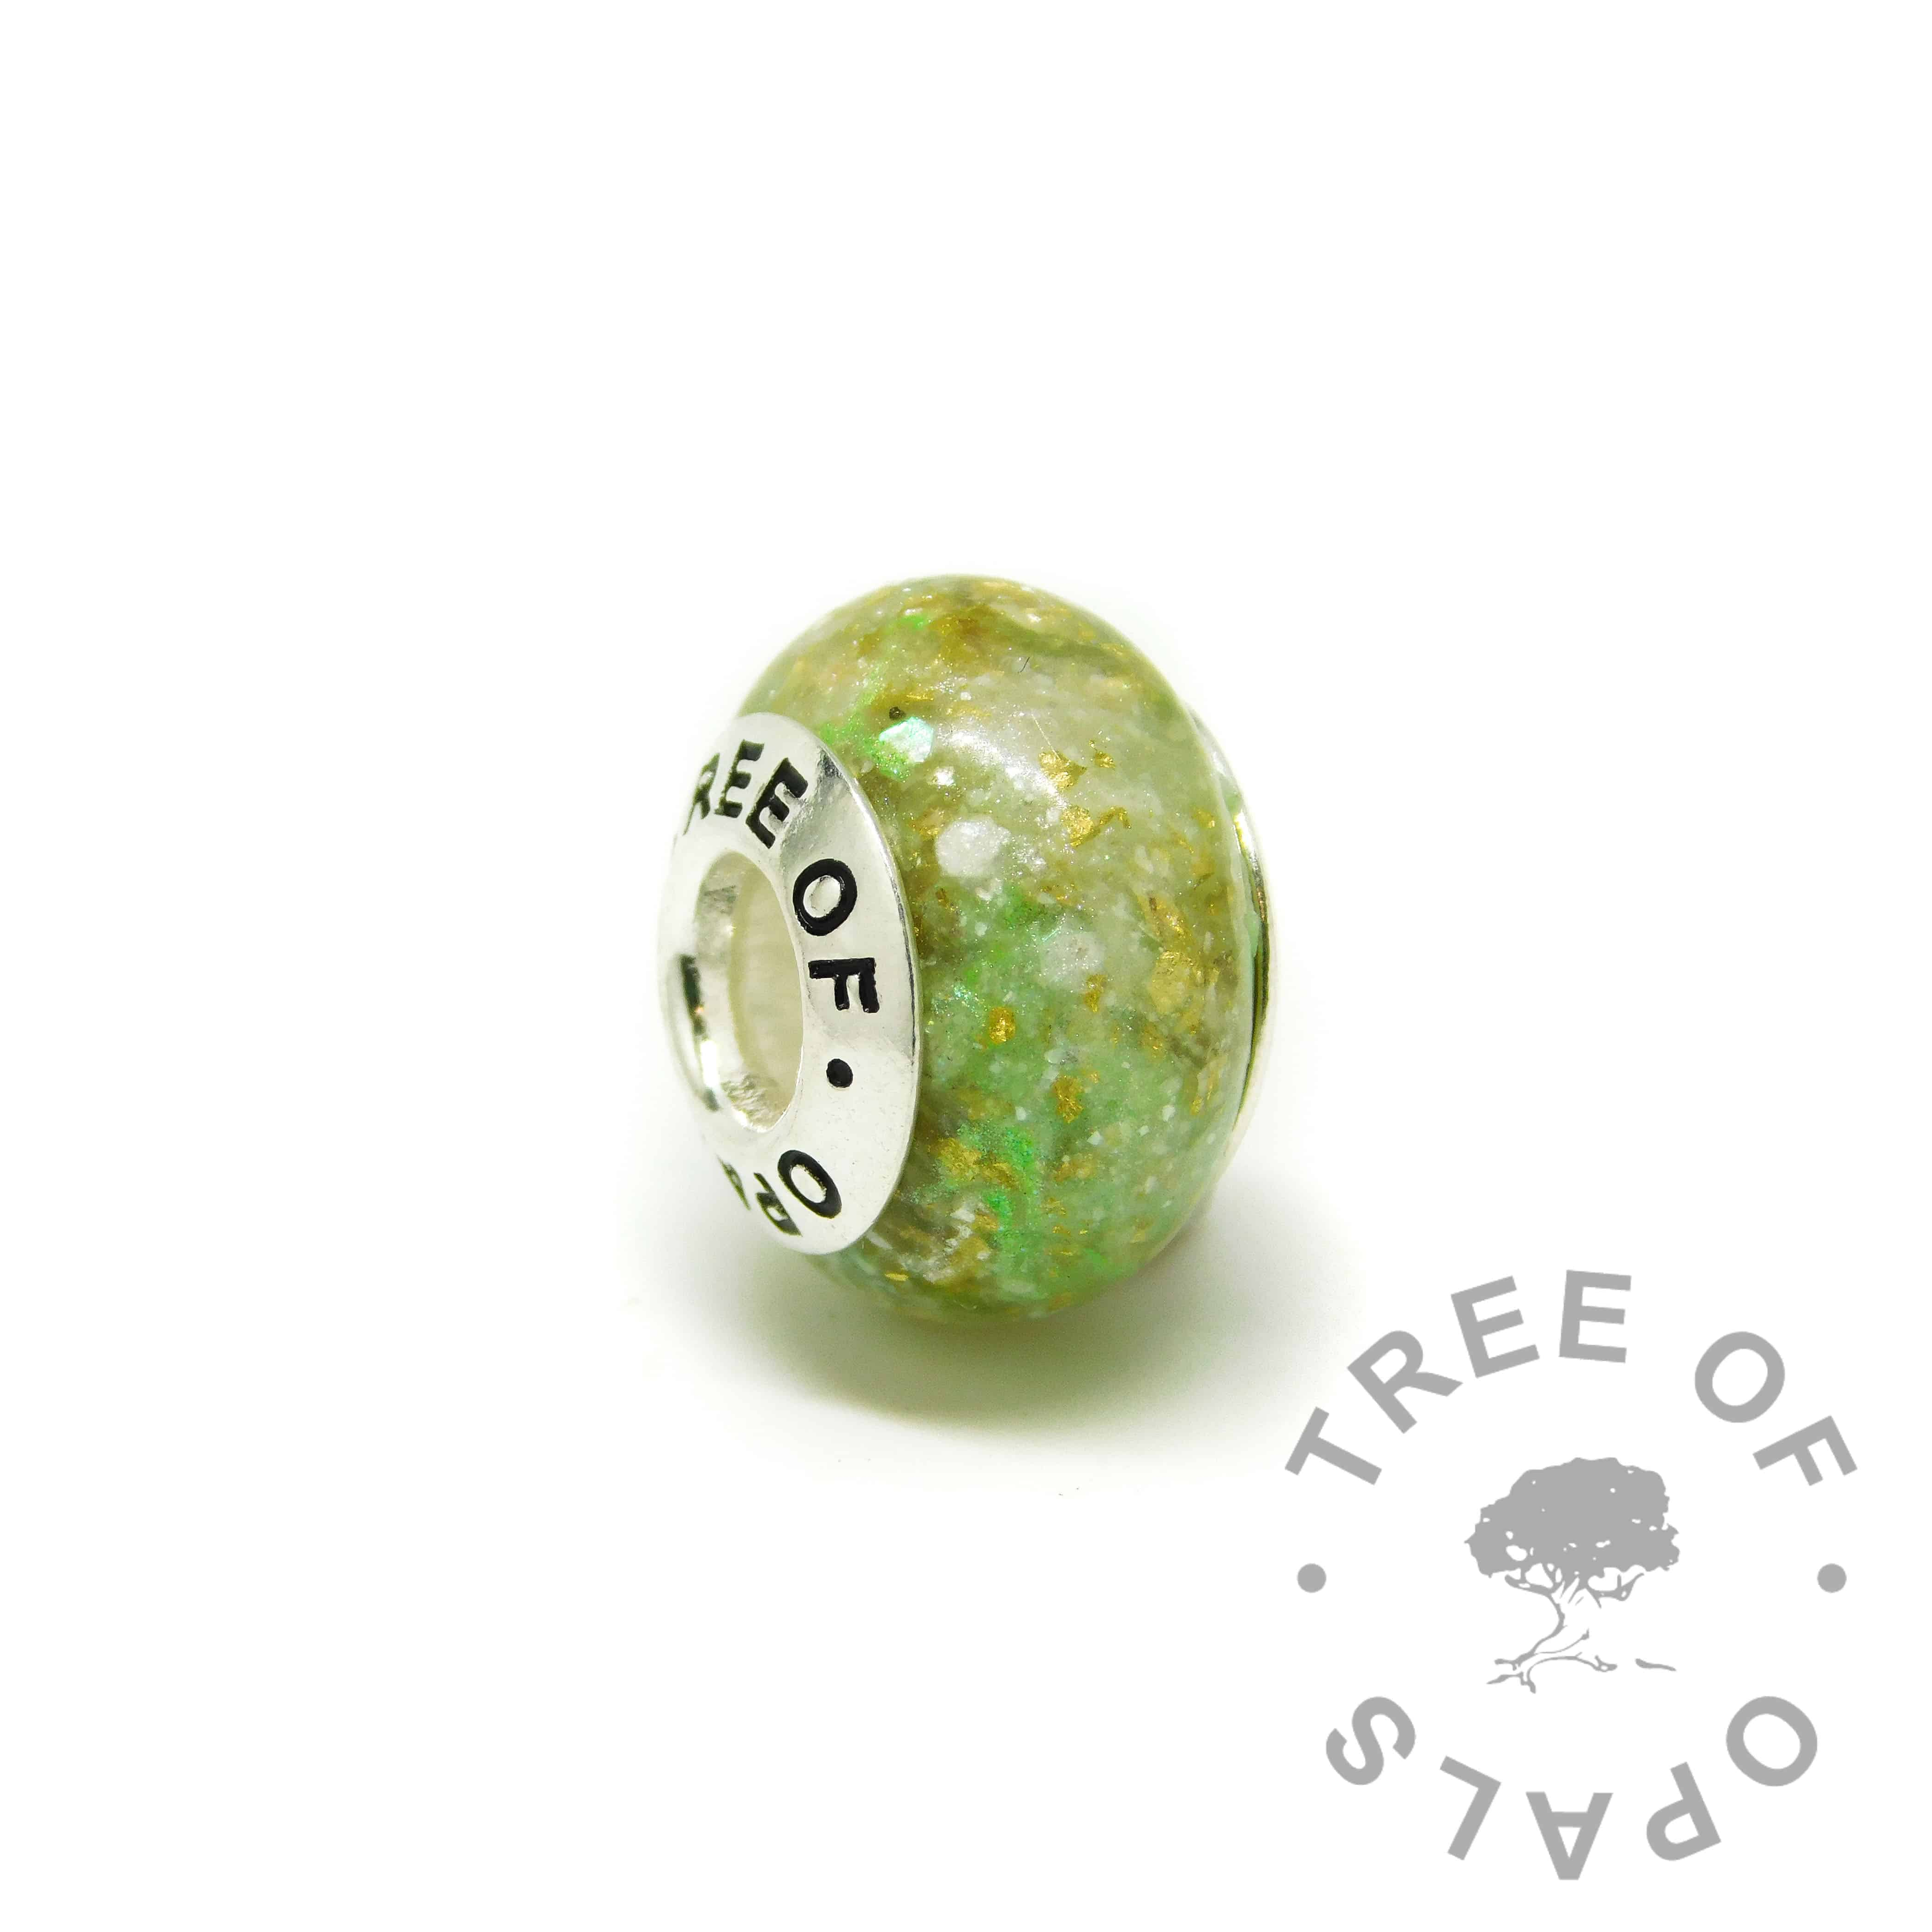 ashes charm with Tree of Opals core, basilisk green resin sparkle mix and subtle gold leaf. cremation ashes charm bead